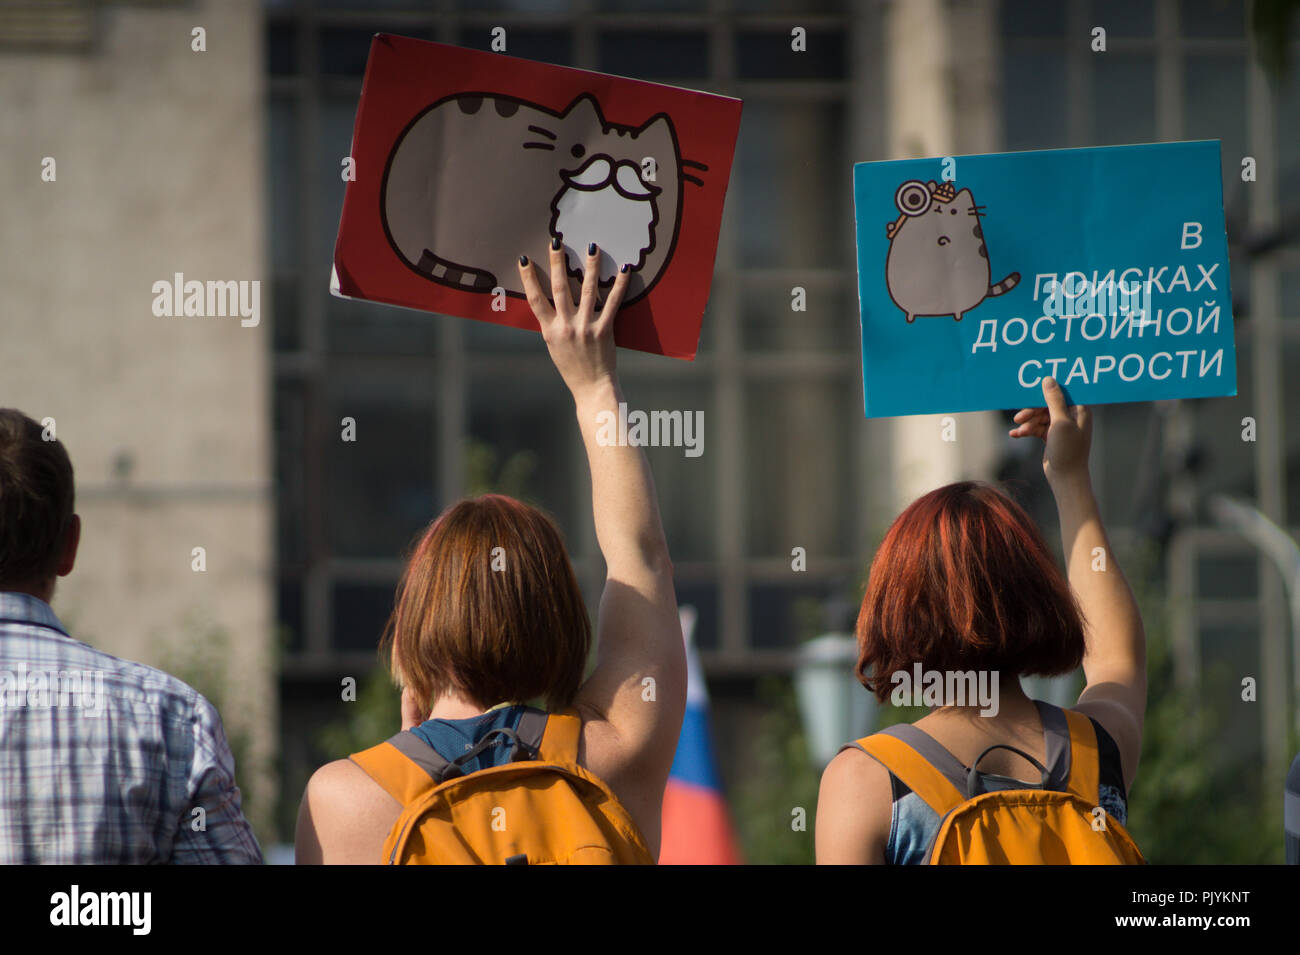 Moscow, Russia. 9th Sept 2018. Young women are holding a series of signs saying 'In Search of Dignified Retirement' during an anti-government rally in Moscow where Russian opposition activists gathered to express resentment about the upcoming pension refrom. Credit: Roman Chukanov/Alamy Live News - Stock Image